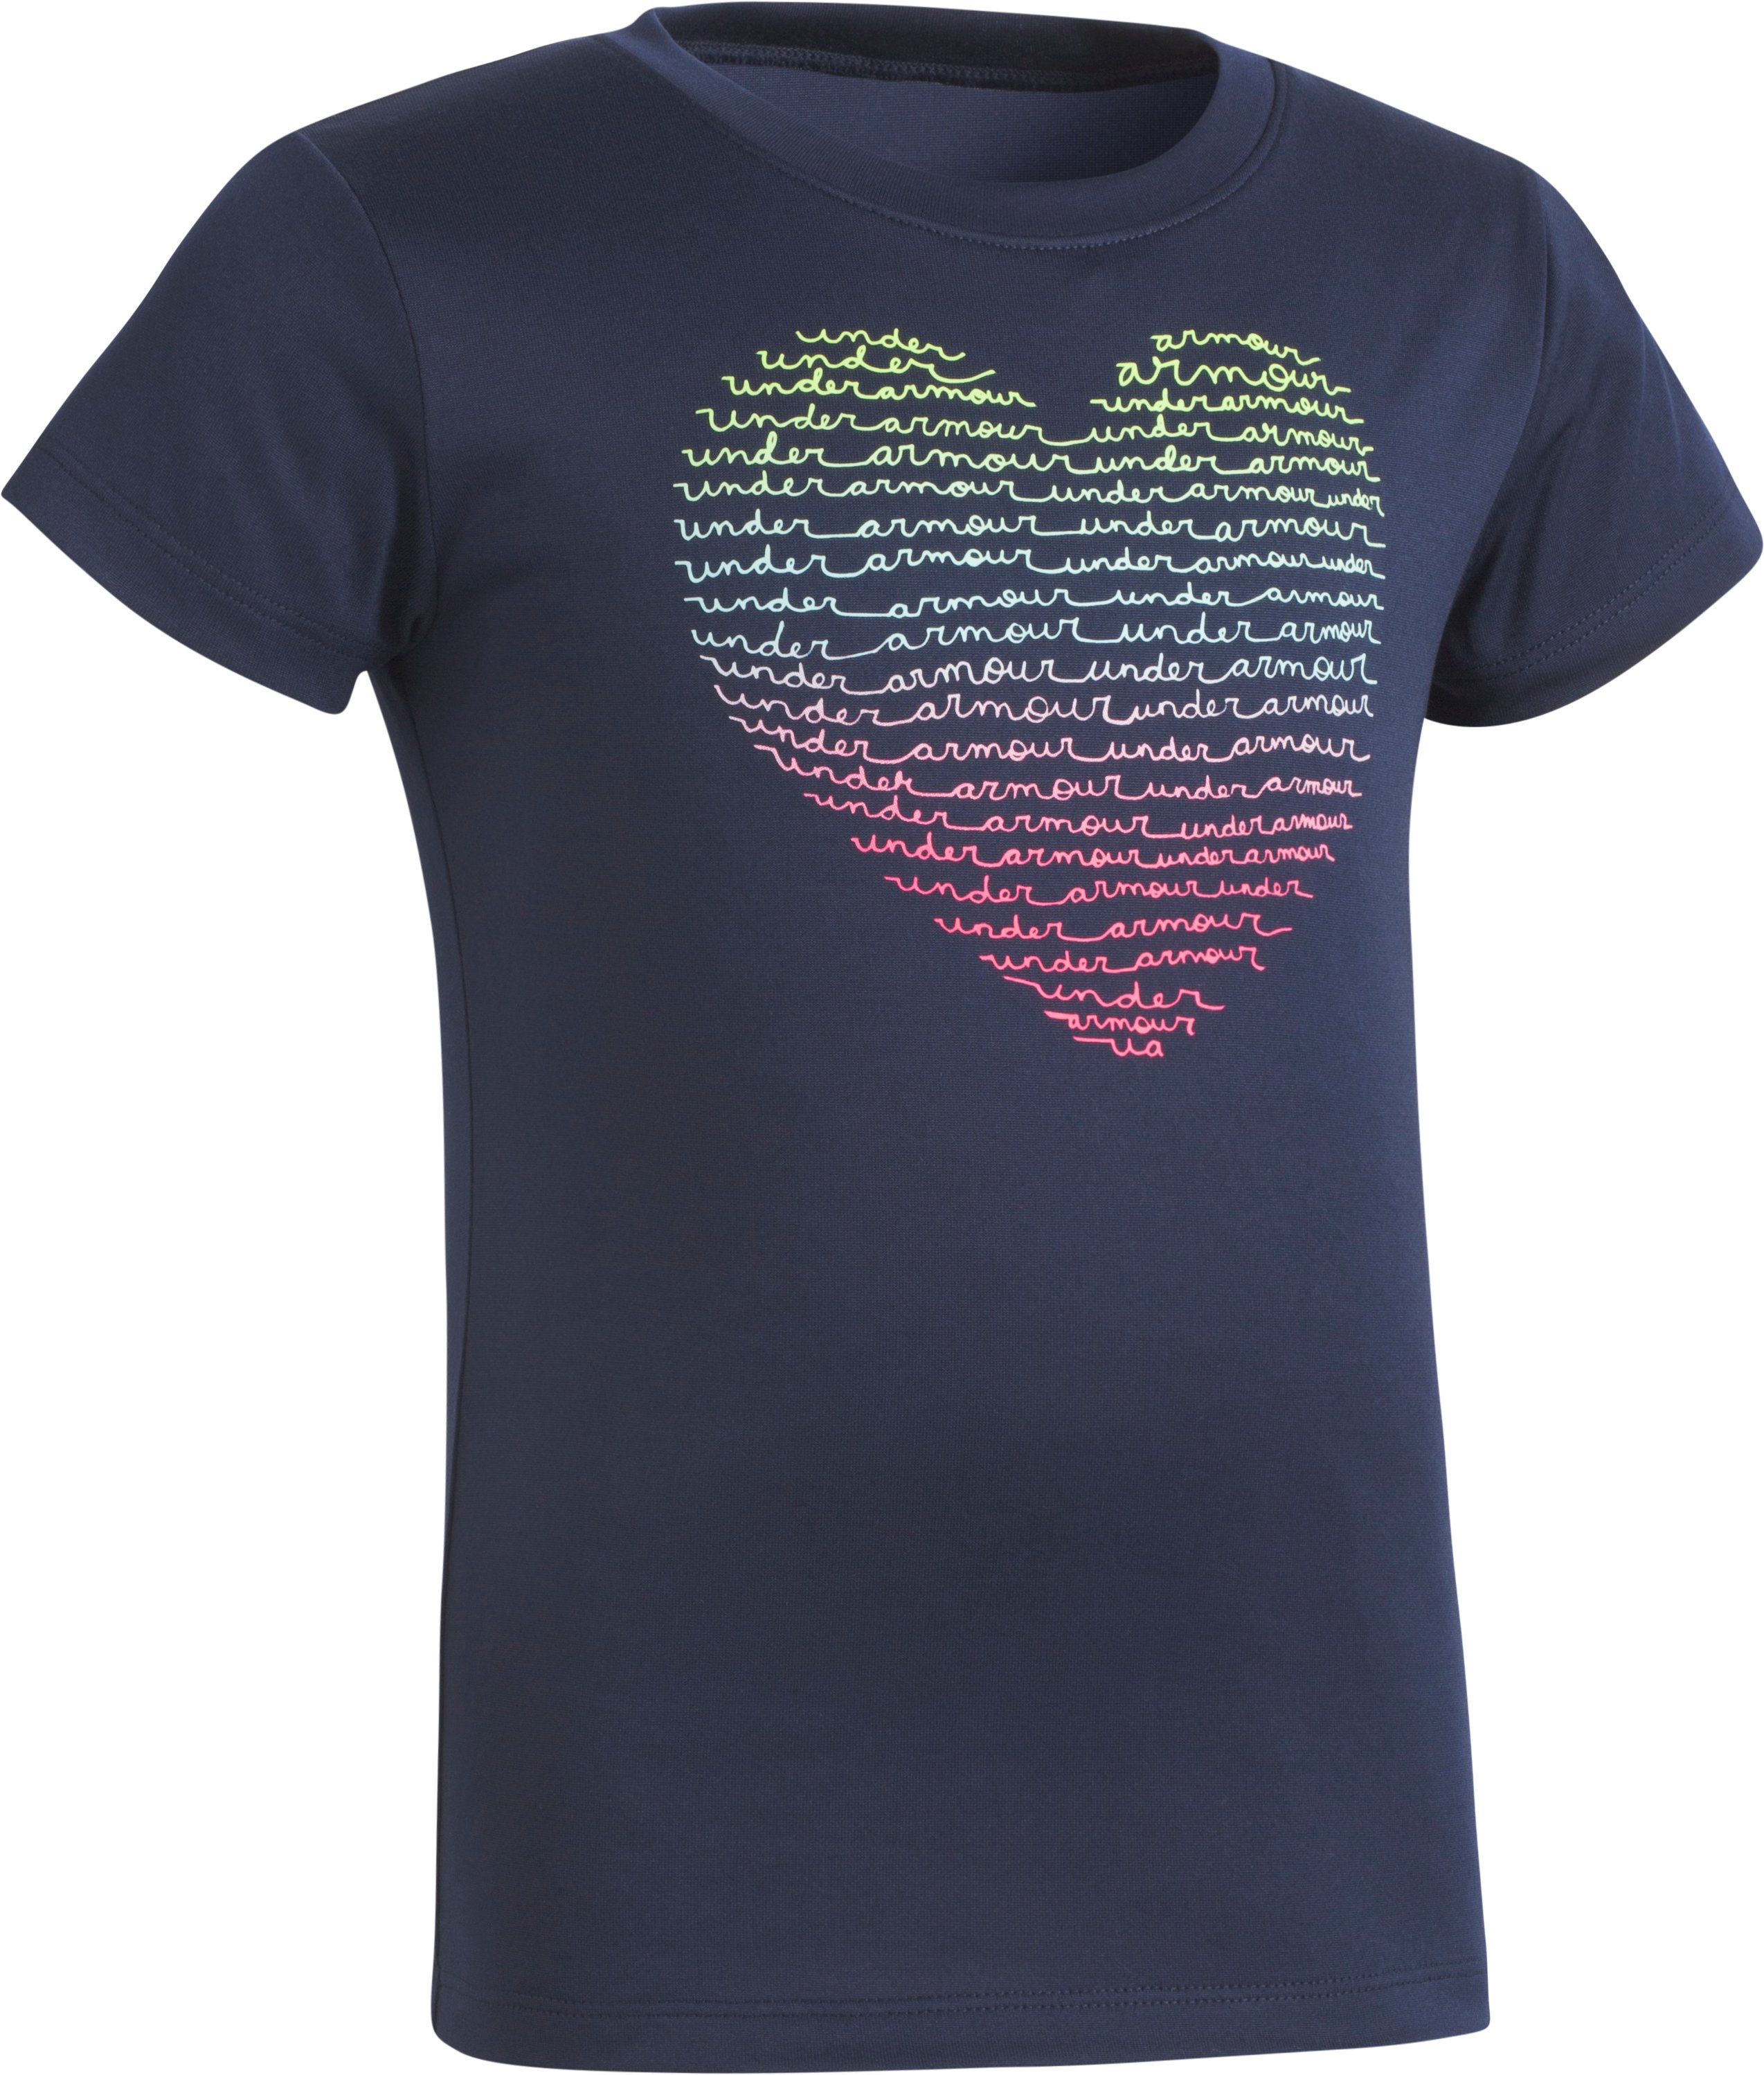 Girls' Pre-School UA Heart Short Sleeve T-Shirt, Midnight Navy, zoomed image